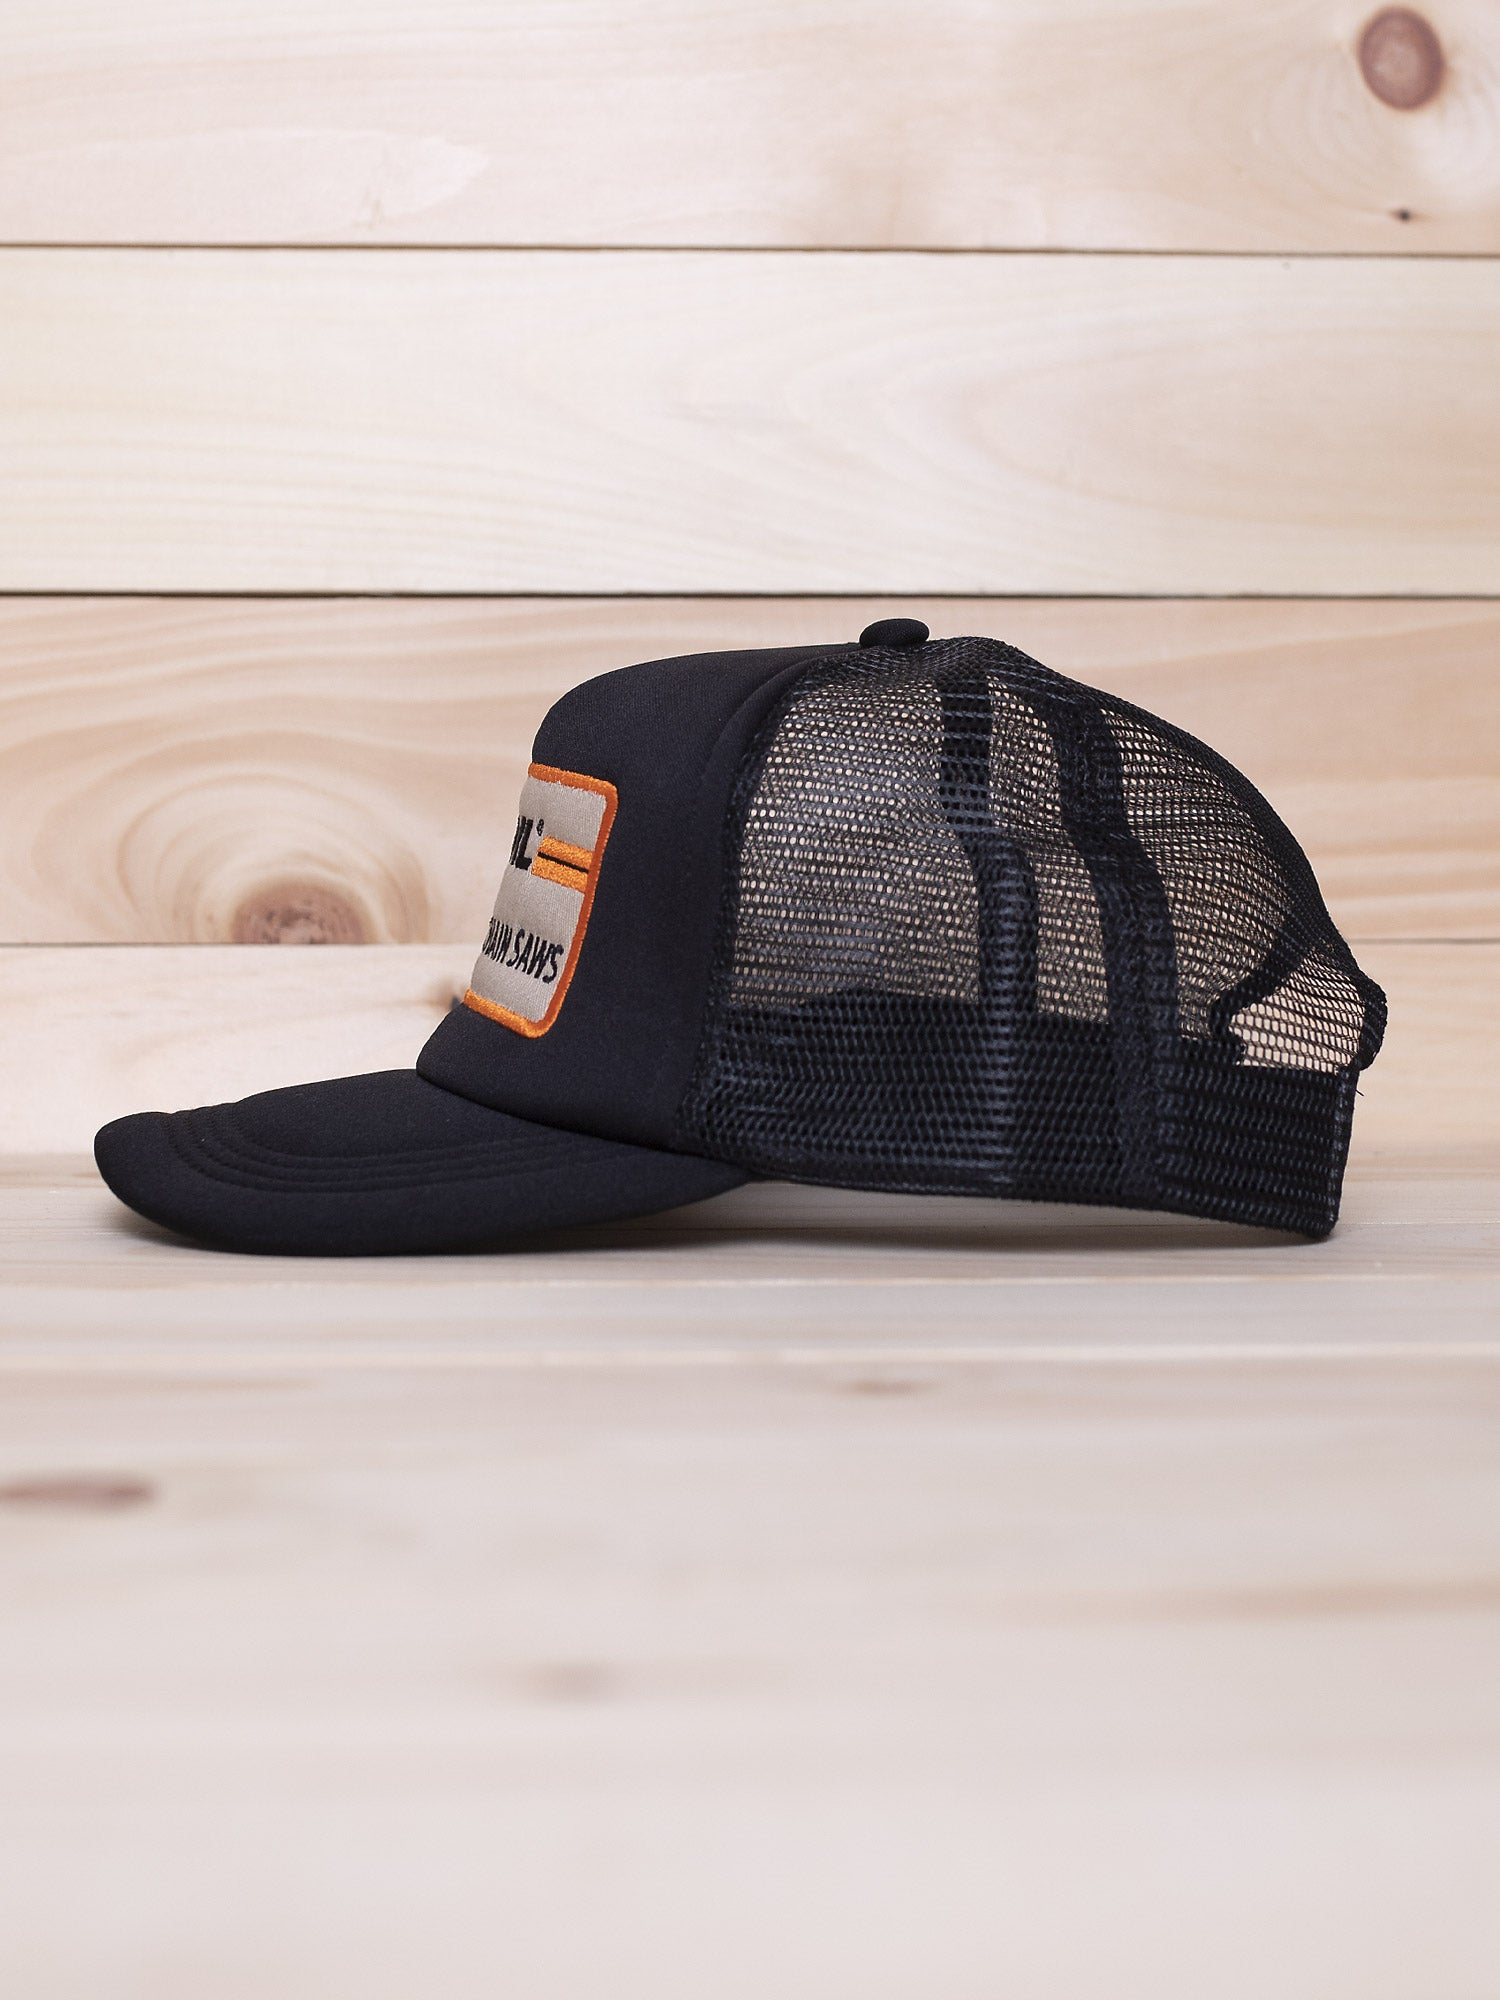 STIHL Foam Trucker Hat